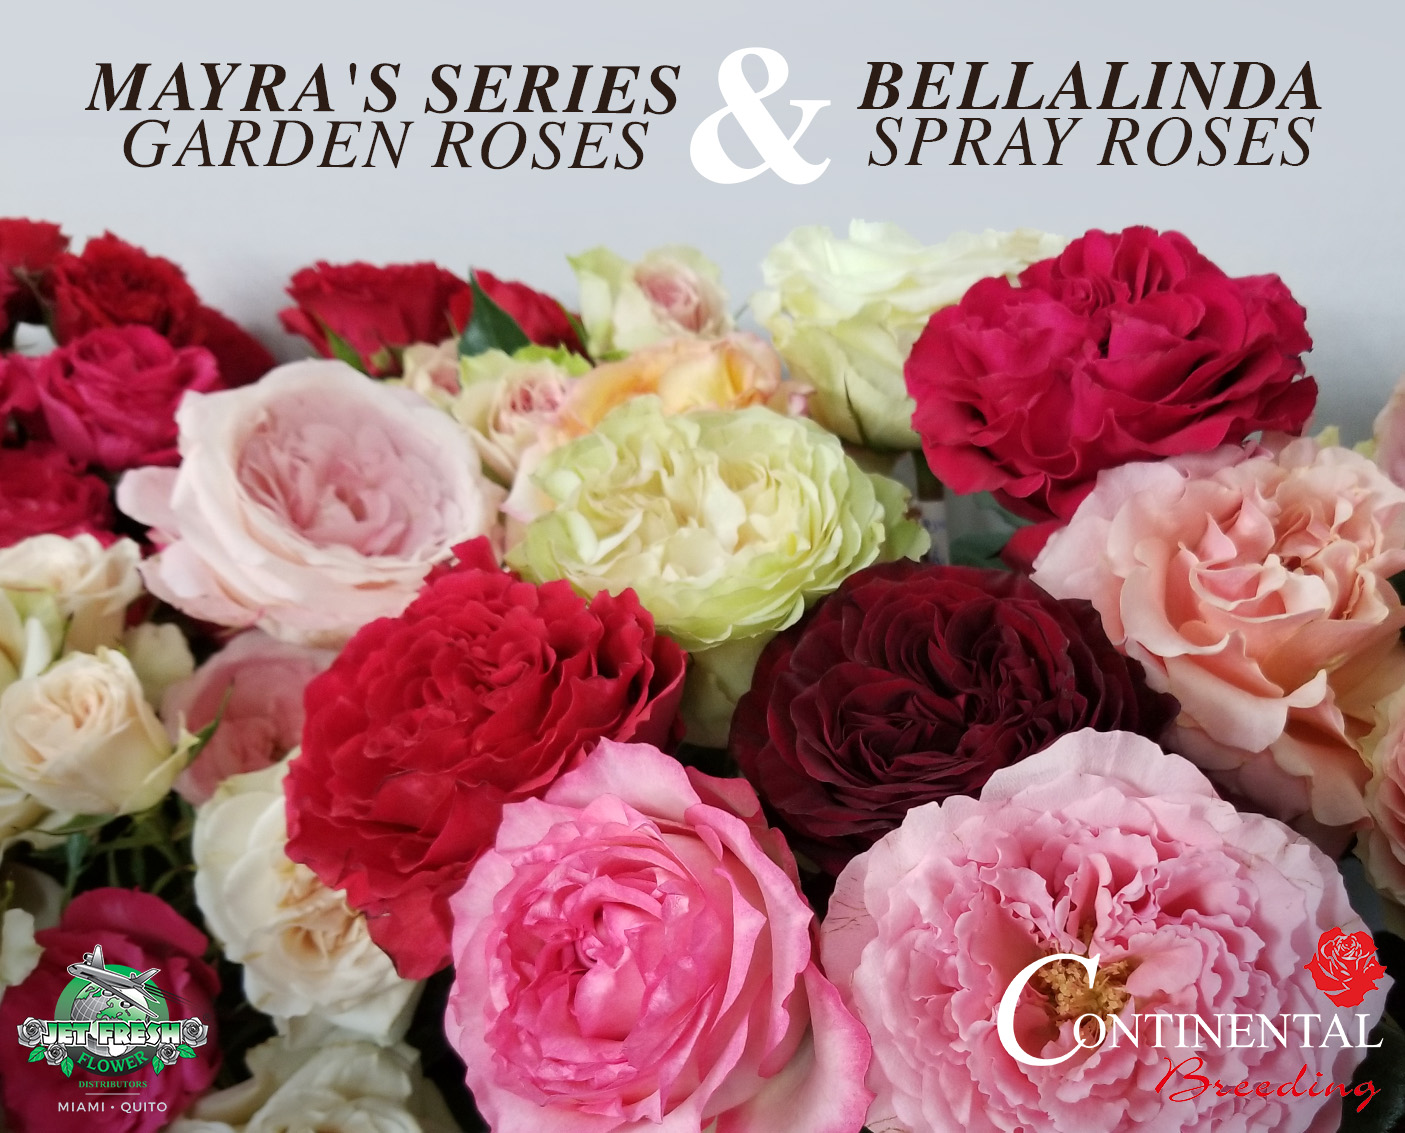 Roses In Garden: Mayra's Series Garden Roses And Bellalinda Spray Roses